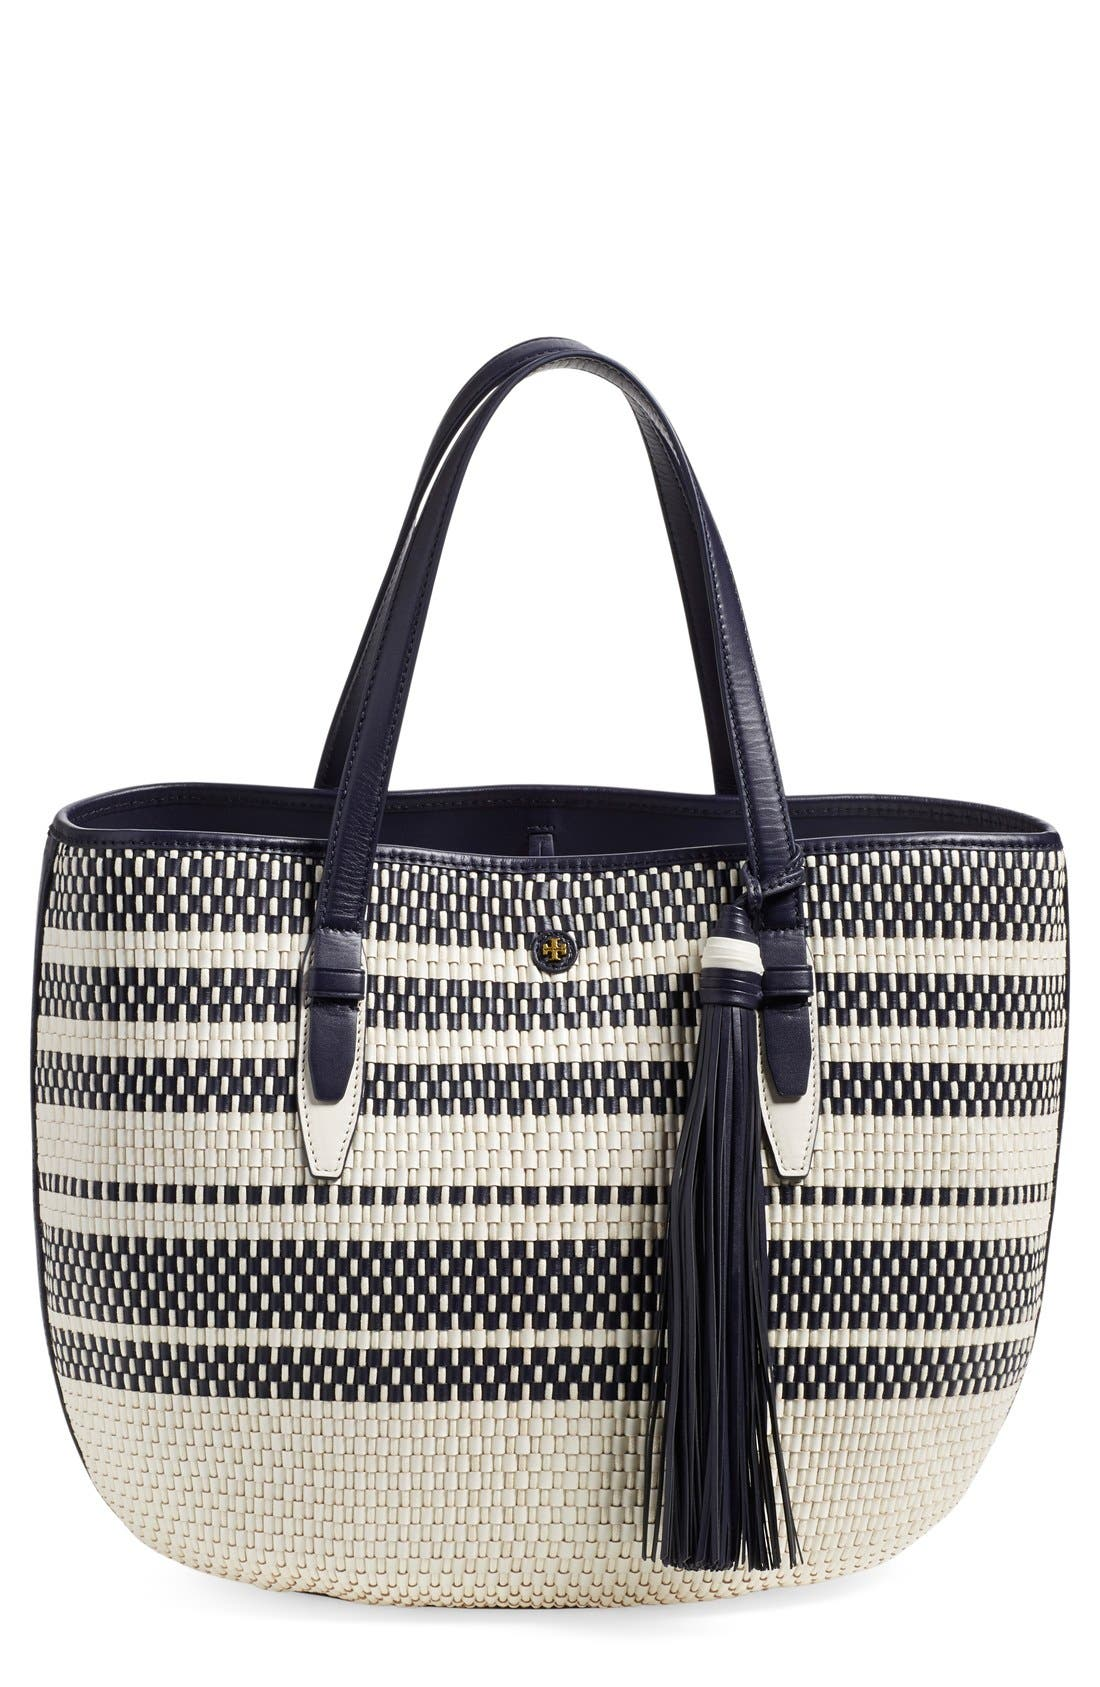 Alternate Image 1 Selected - Tory Burch Woven Leather Tote